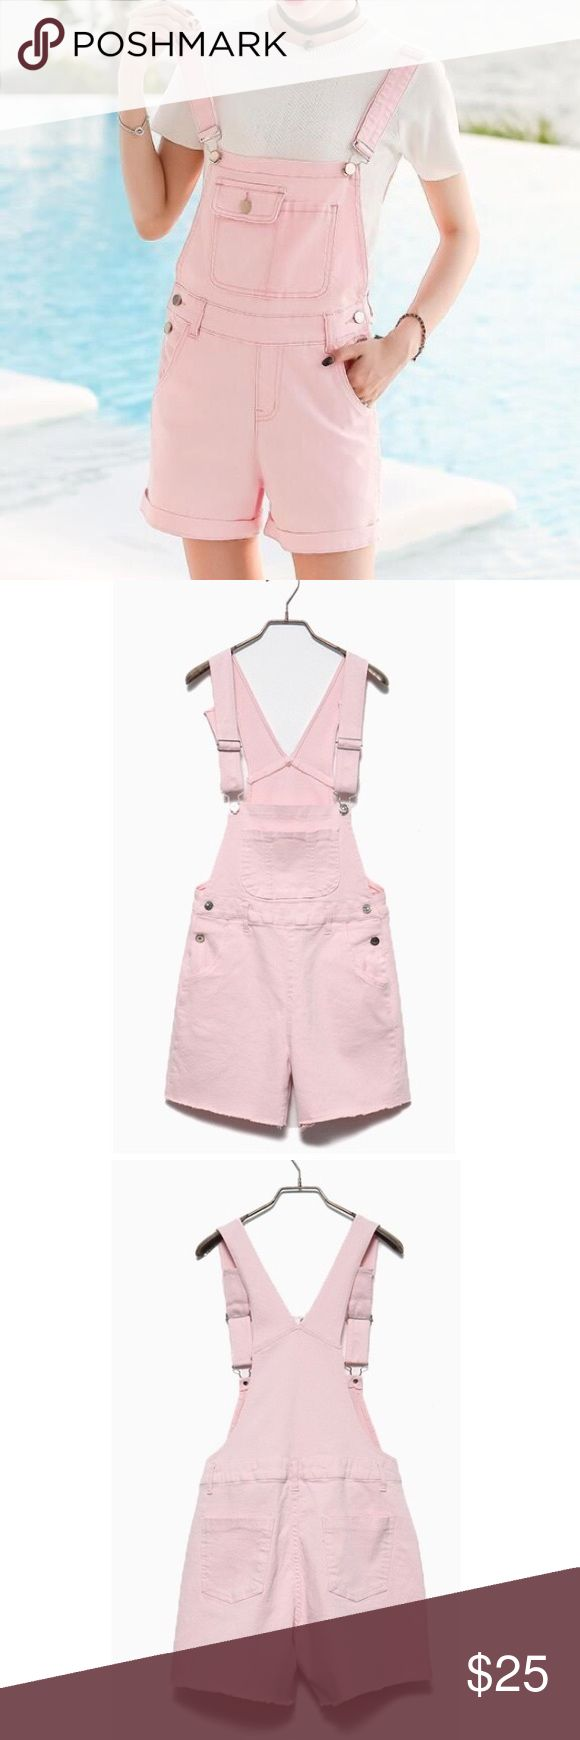 Cute baby pink denim overall suspender shorts! This cute denim overall suspender shorts. They fit like a dress, so if you're a small in a normal dress, this would be a small for you to buy, medium and large so on! So cute to layer with a cute oversized shirt underneath!  ✅FREE UNITED STATES SHIPPING✅ tags// tumblr grunge American apparel summer Spring winter pacsun American eagle urban outfitters tee shirt vintage modern cute relax Tommy Hilfiger tommy jeans tommy girl Tom adidas Kimifan…